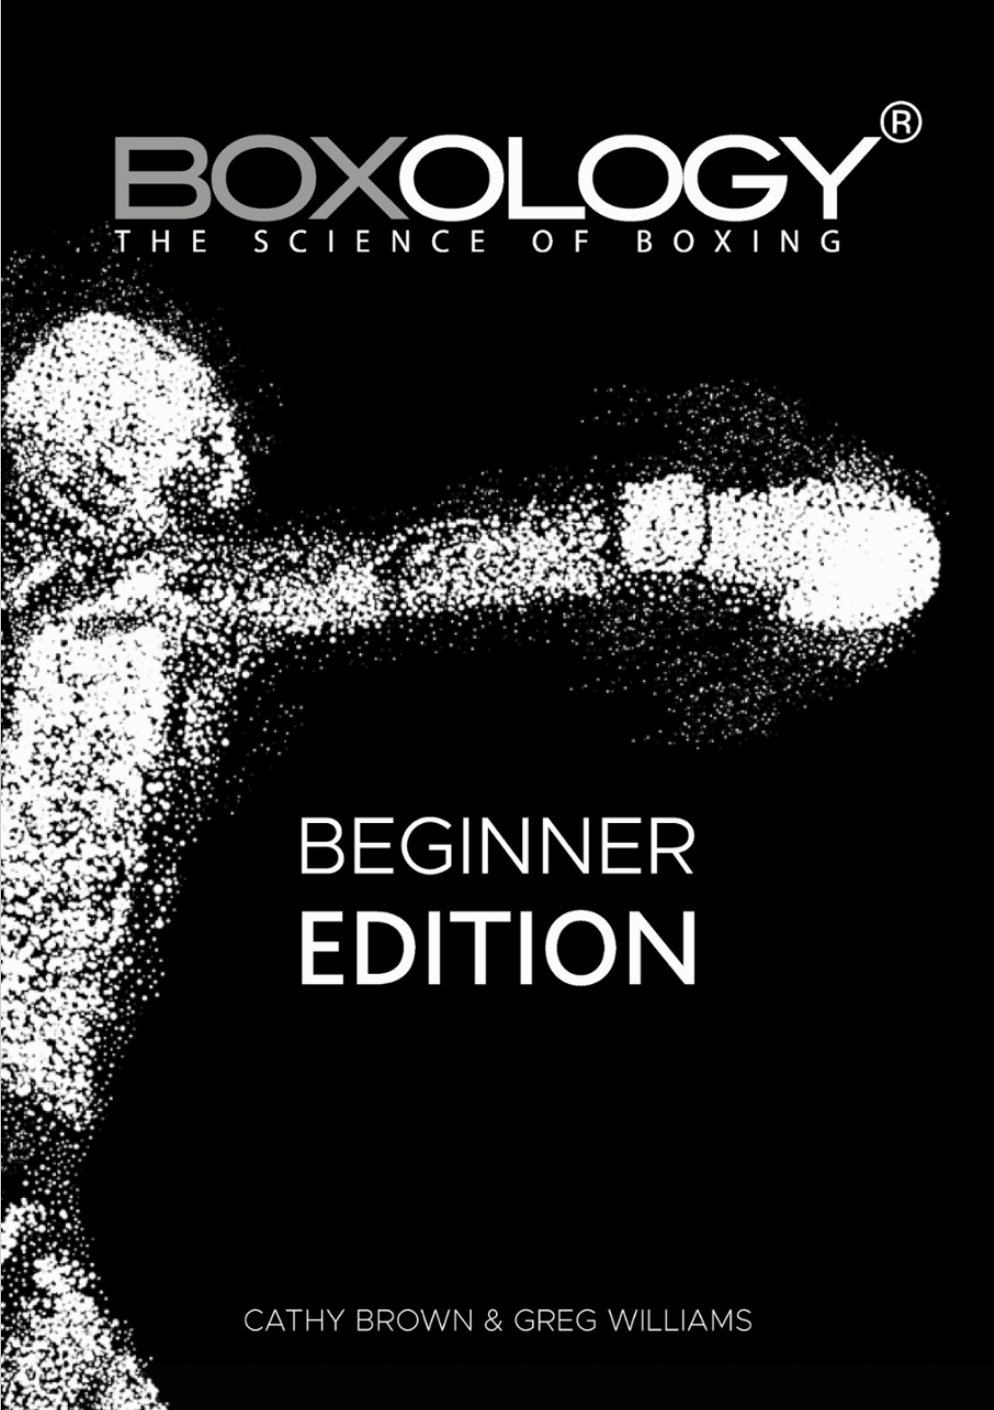 Boxology® Beginner Book  - is available on Amazon Kindle: It is comprehensive guide to boxing from the history, anatomy/physiology, injury prevention to the correct way to coach boxing technique and hold pads.  It's is an excellent book for anyone who wants to teach correct basic boxing skills including basic footwork and combinations.This App and book are for anyone who is interested in boxing from amateur boxers to professional boxers, martial artists to fitness boxers, sports coaches to personal trainers wanting to integrate boxing into their teaching practice.  The intermediate App and Book will be available soon!  Keep checking in.